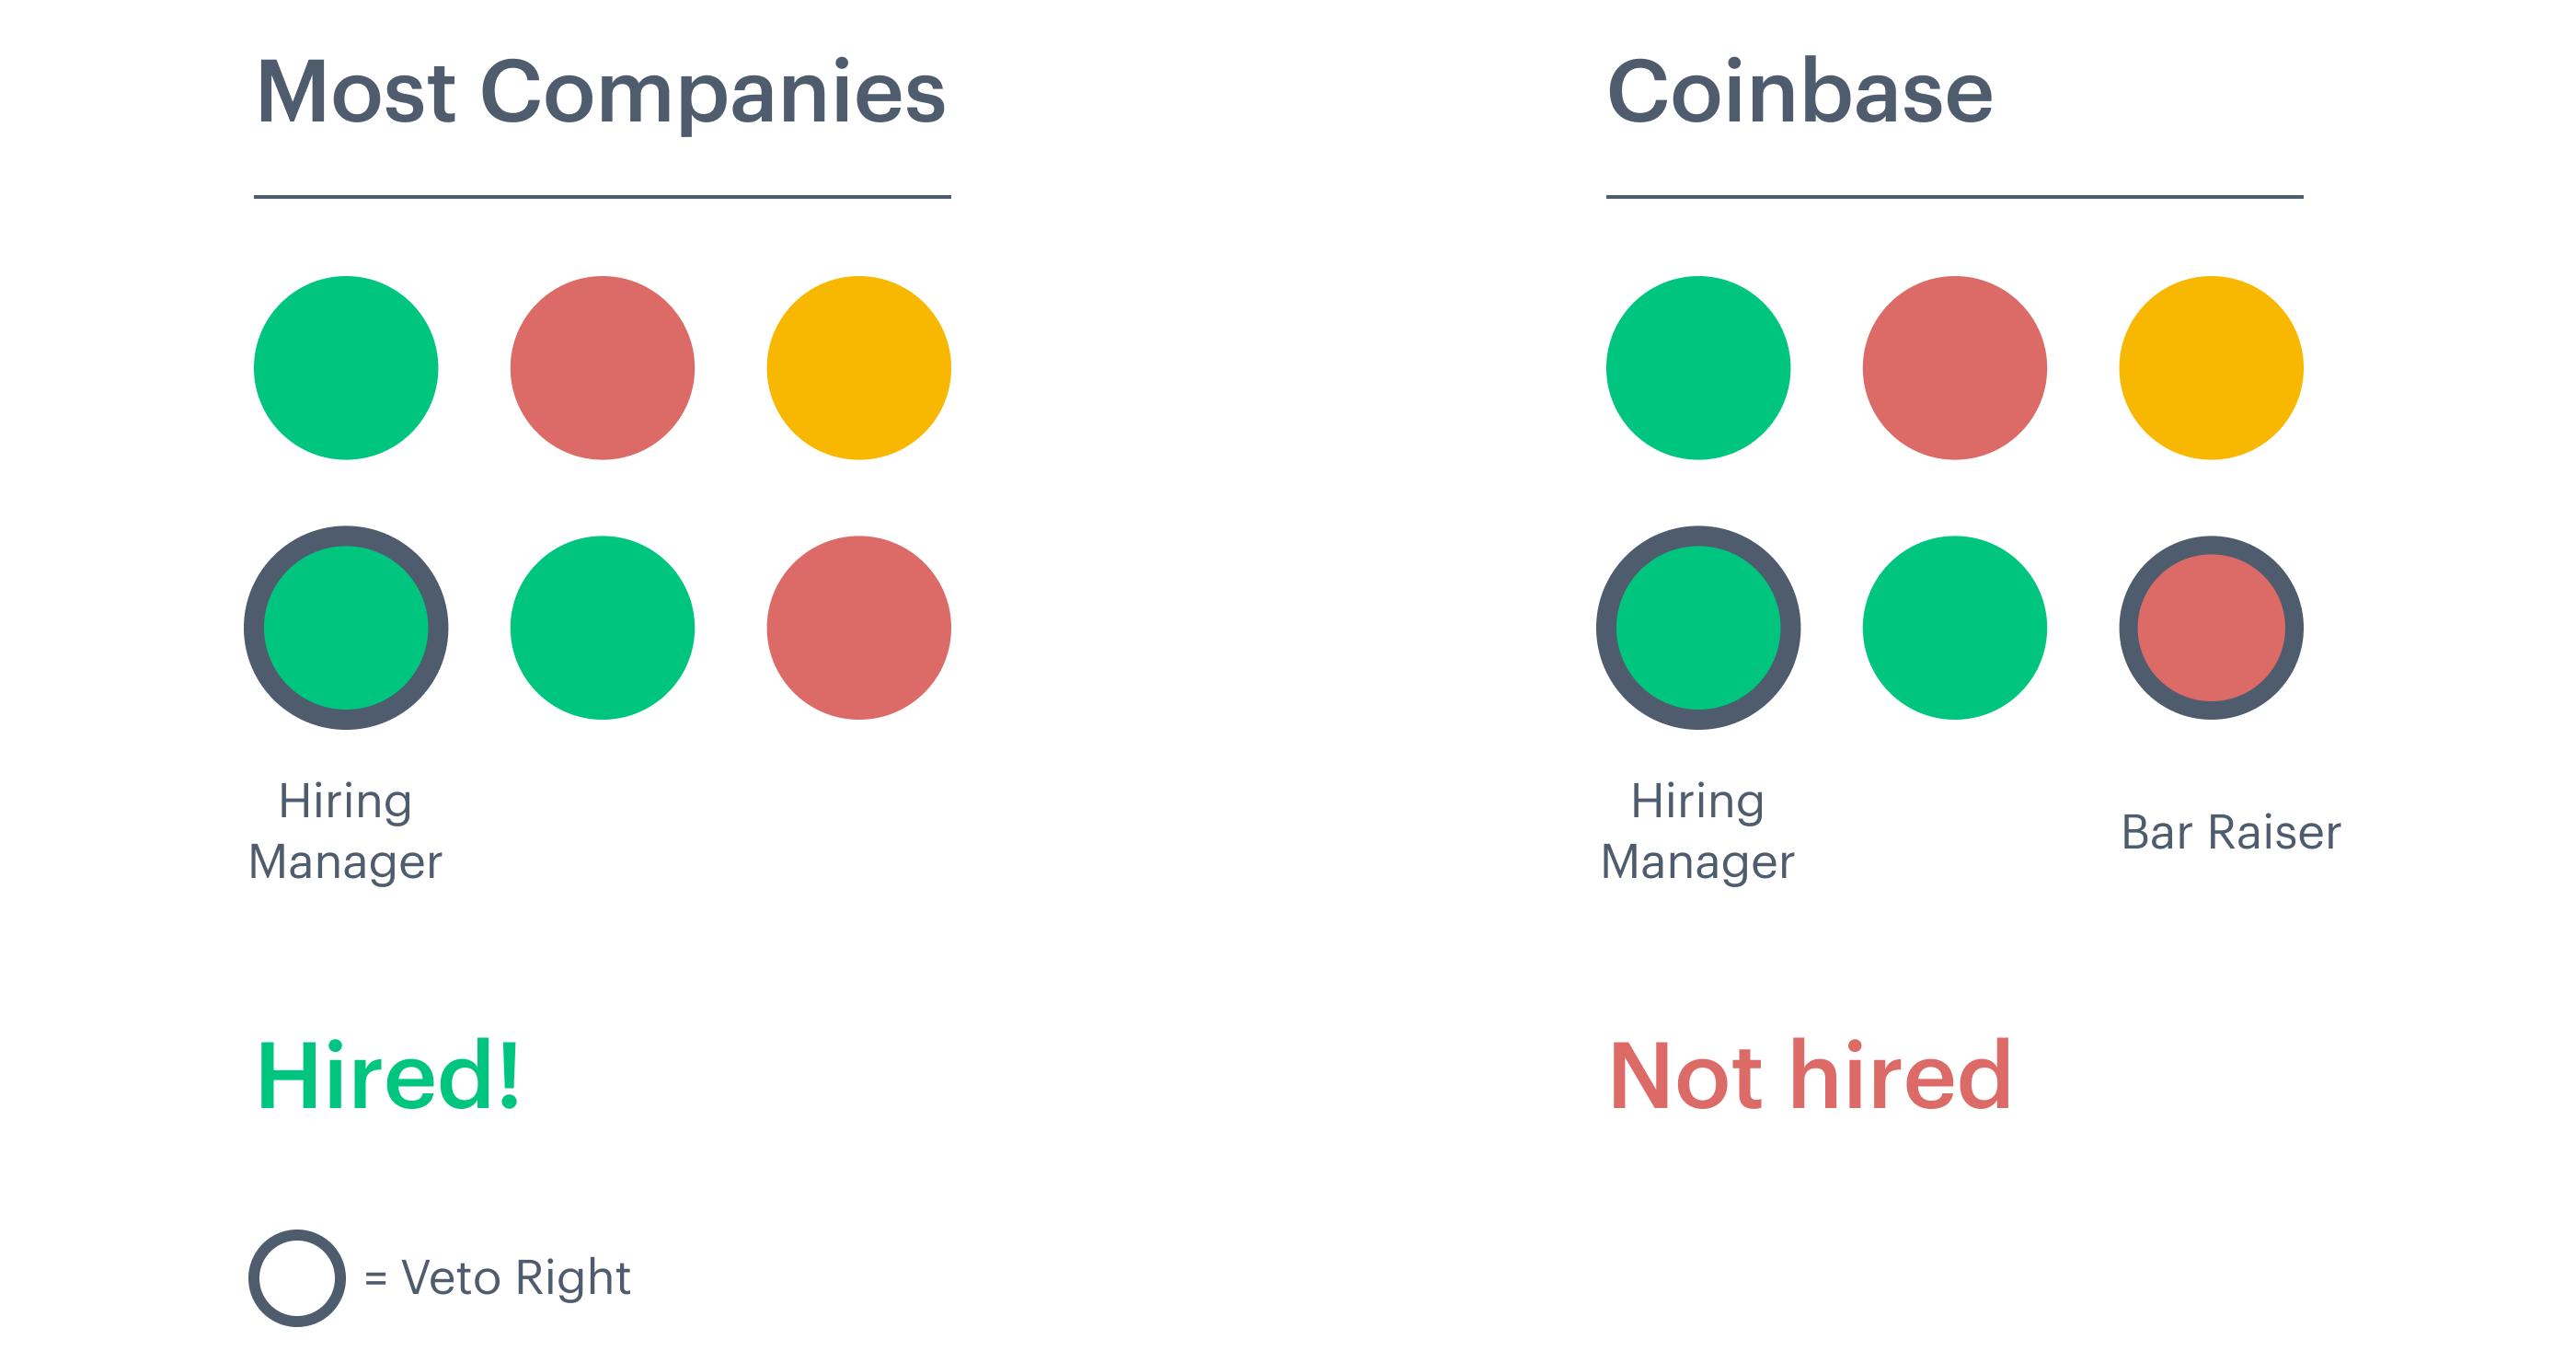 Get This Report on Coinbase Hiring